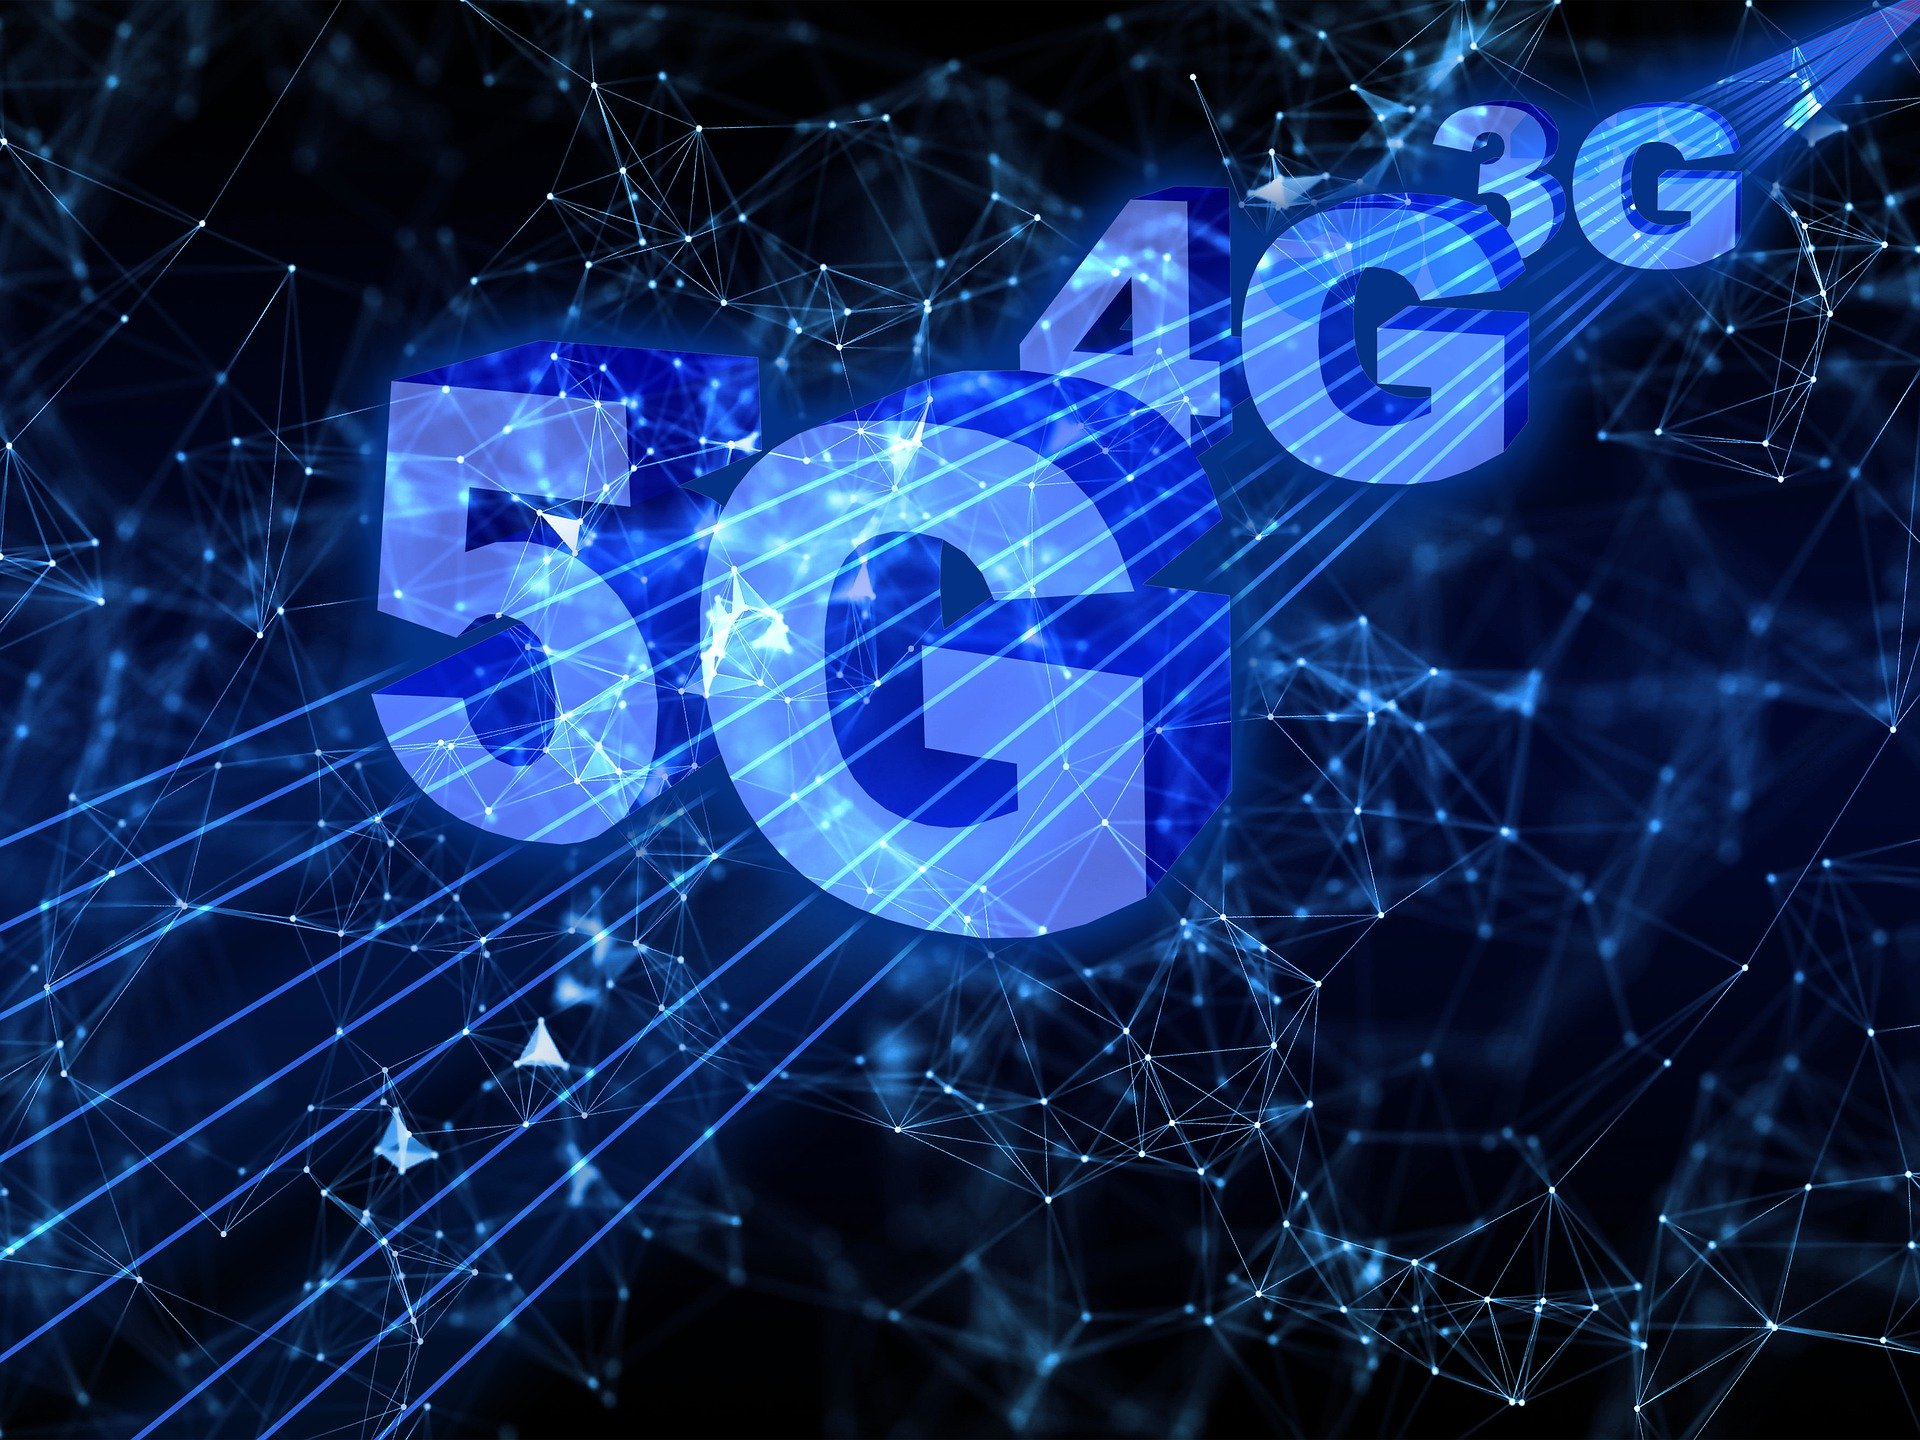 Update on 5G Development and Spectrum Issues